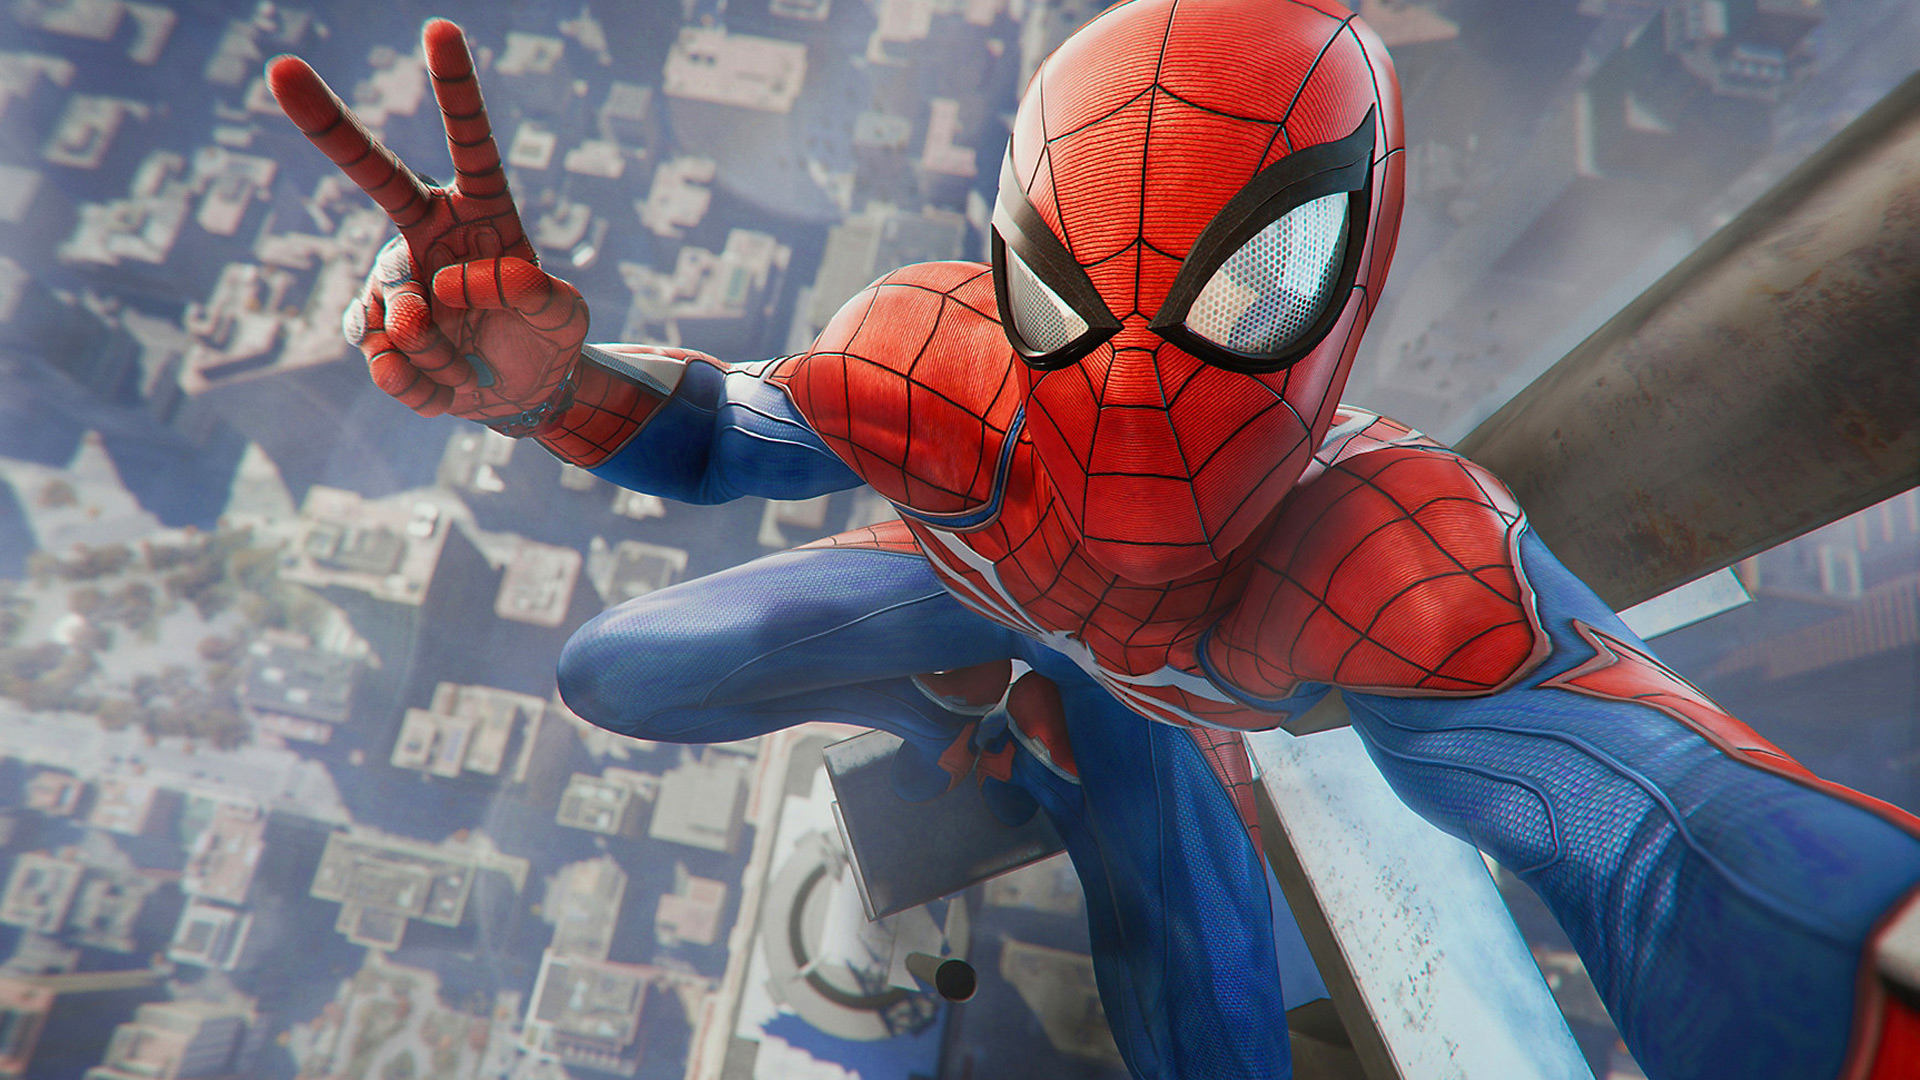 E3 2018: Sony Conference Empowers The Last of Us Part II, Spider-Man, Nioh 2